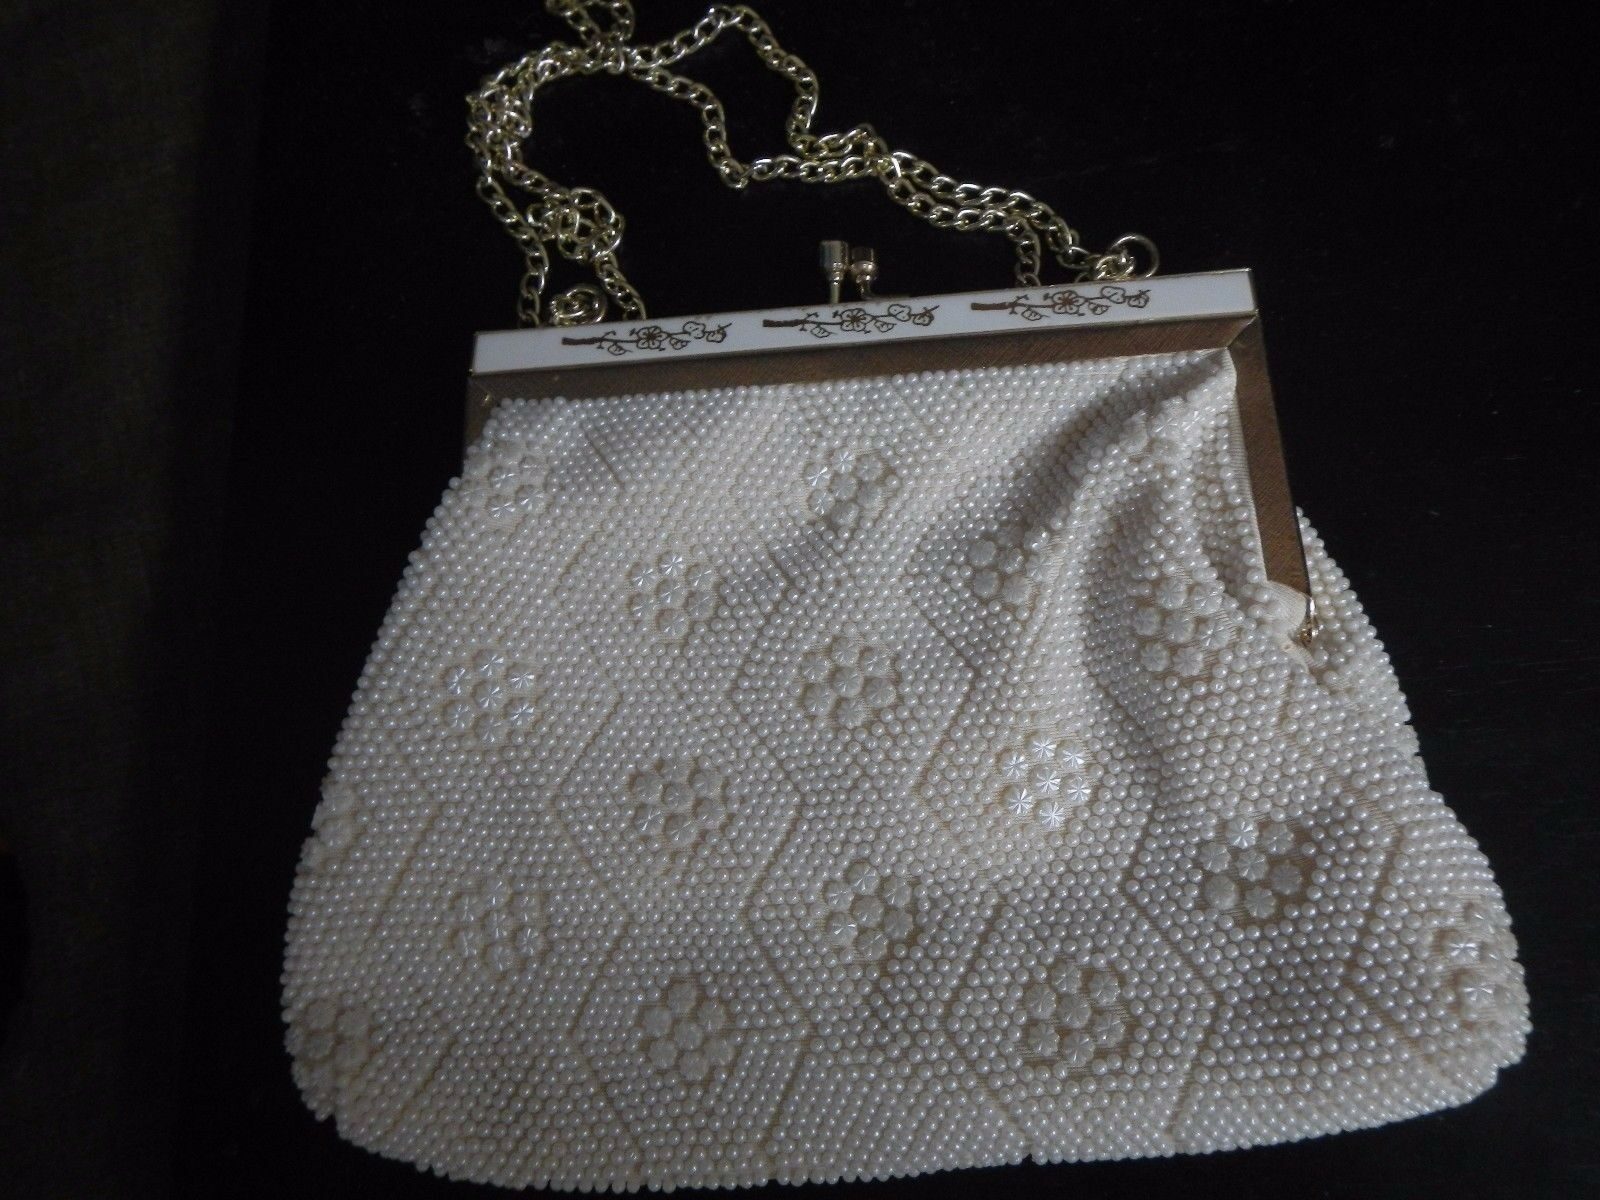 Small Vintage White Floral Pattern Beaded Purse, inlaid frame, chain strap, EUC